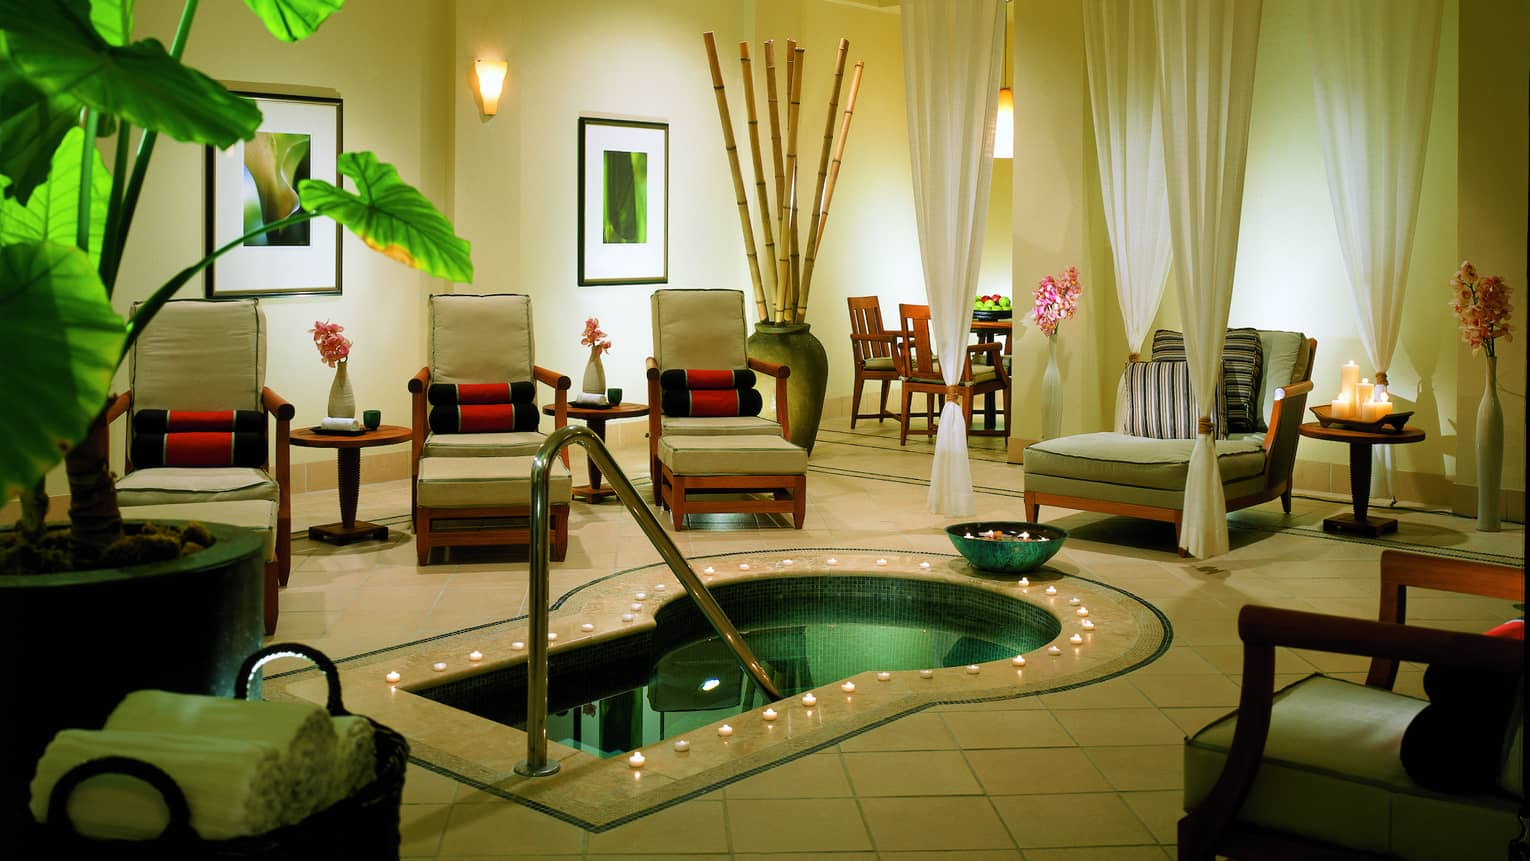 the chair salon houston mid century folding dallas spa resort massage and facials four seasons at